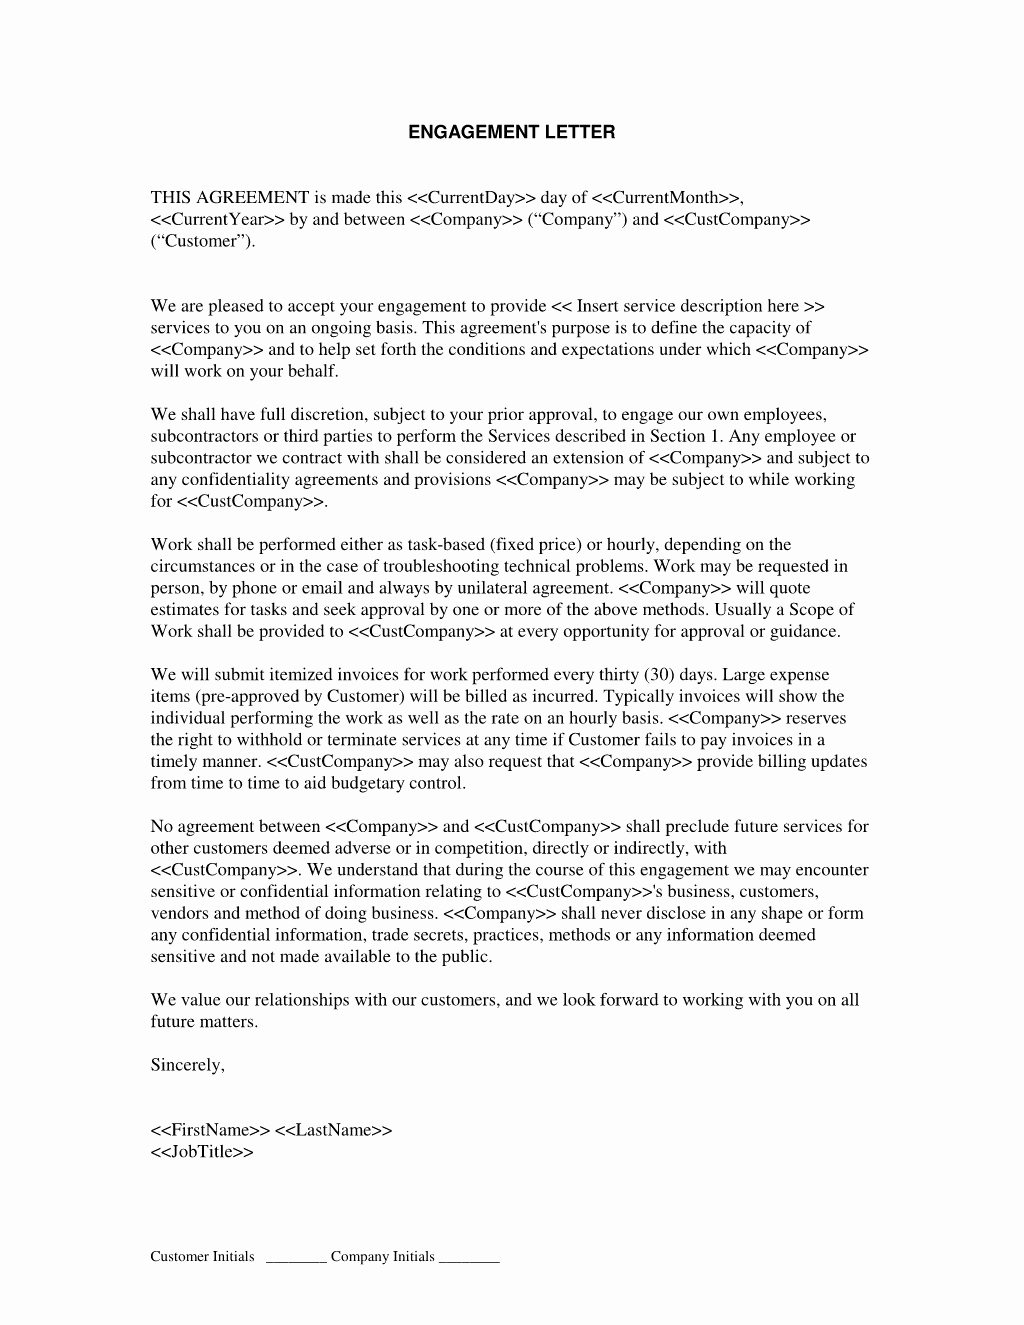 Business Valuation Engagement Letter Template - 18 Sample Consulting Engagement Letters